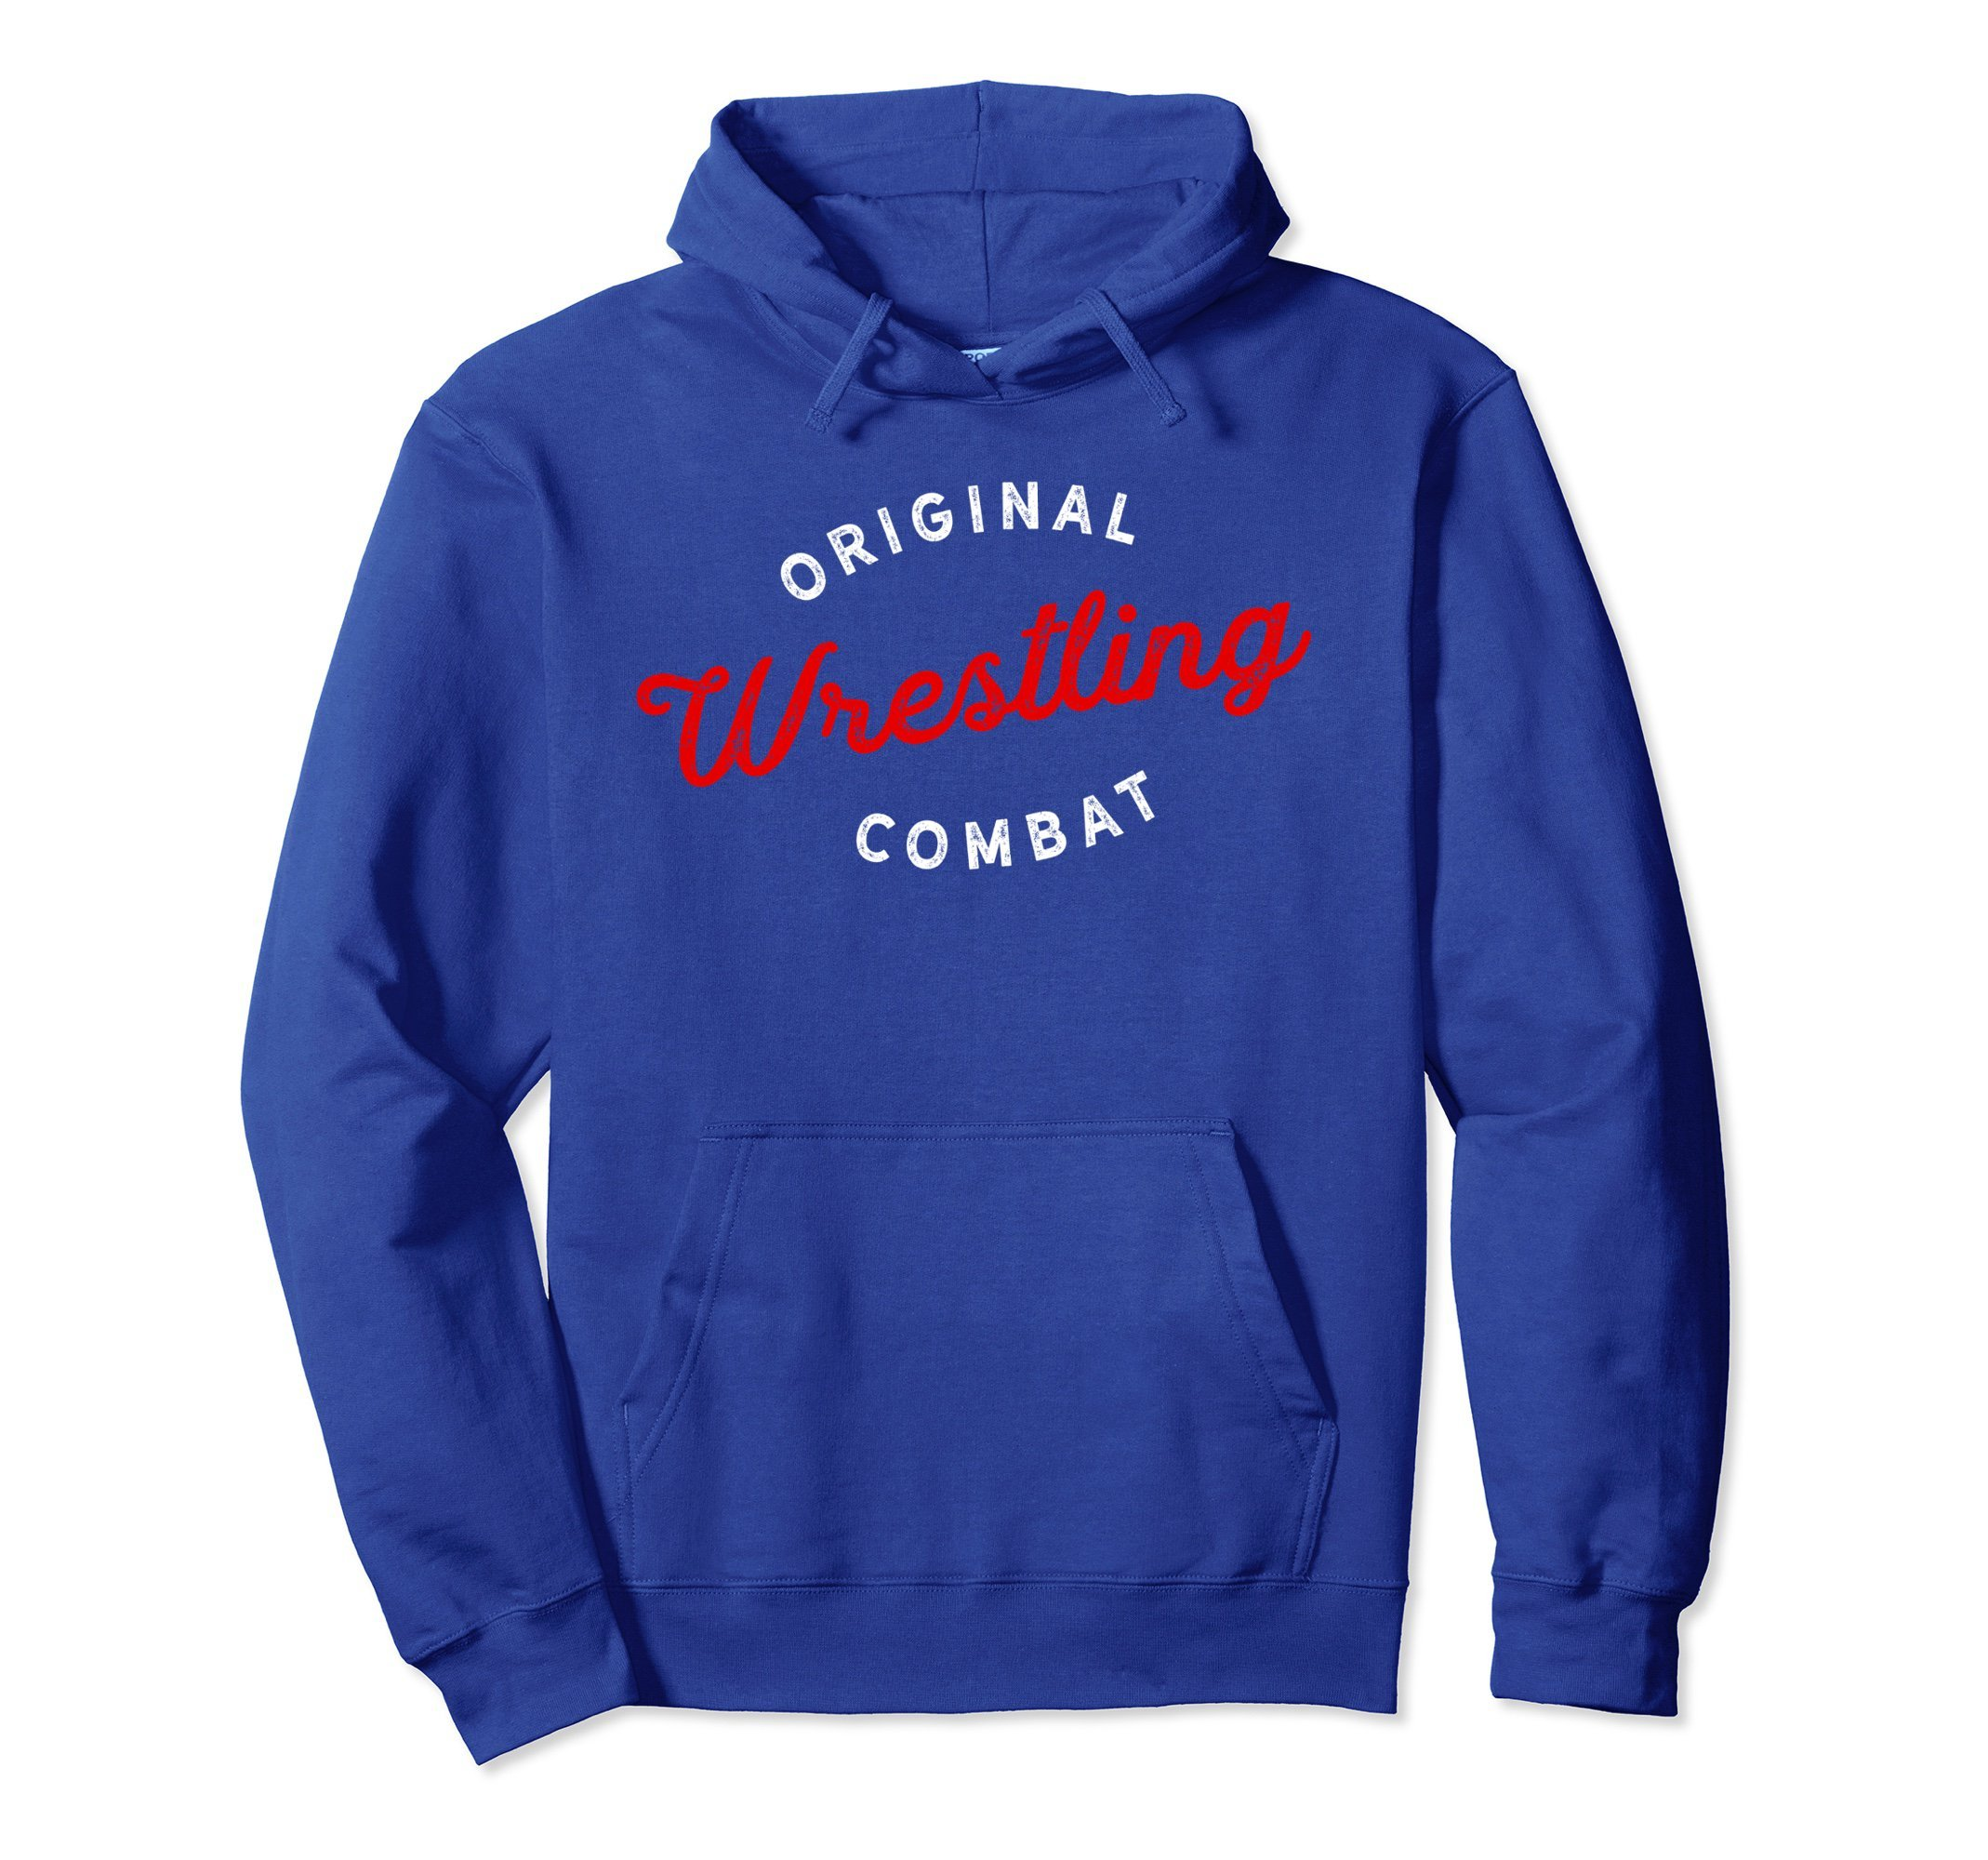 Unisex Original Combat Wrestling Hoodie for Wrestlers, Gift, Red XL: Royal Blue